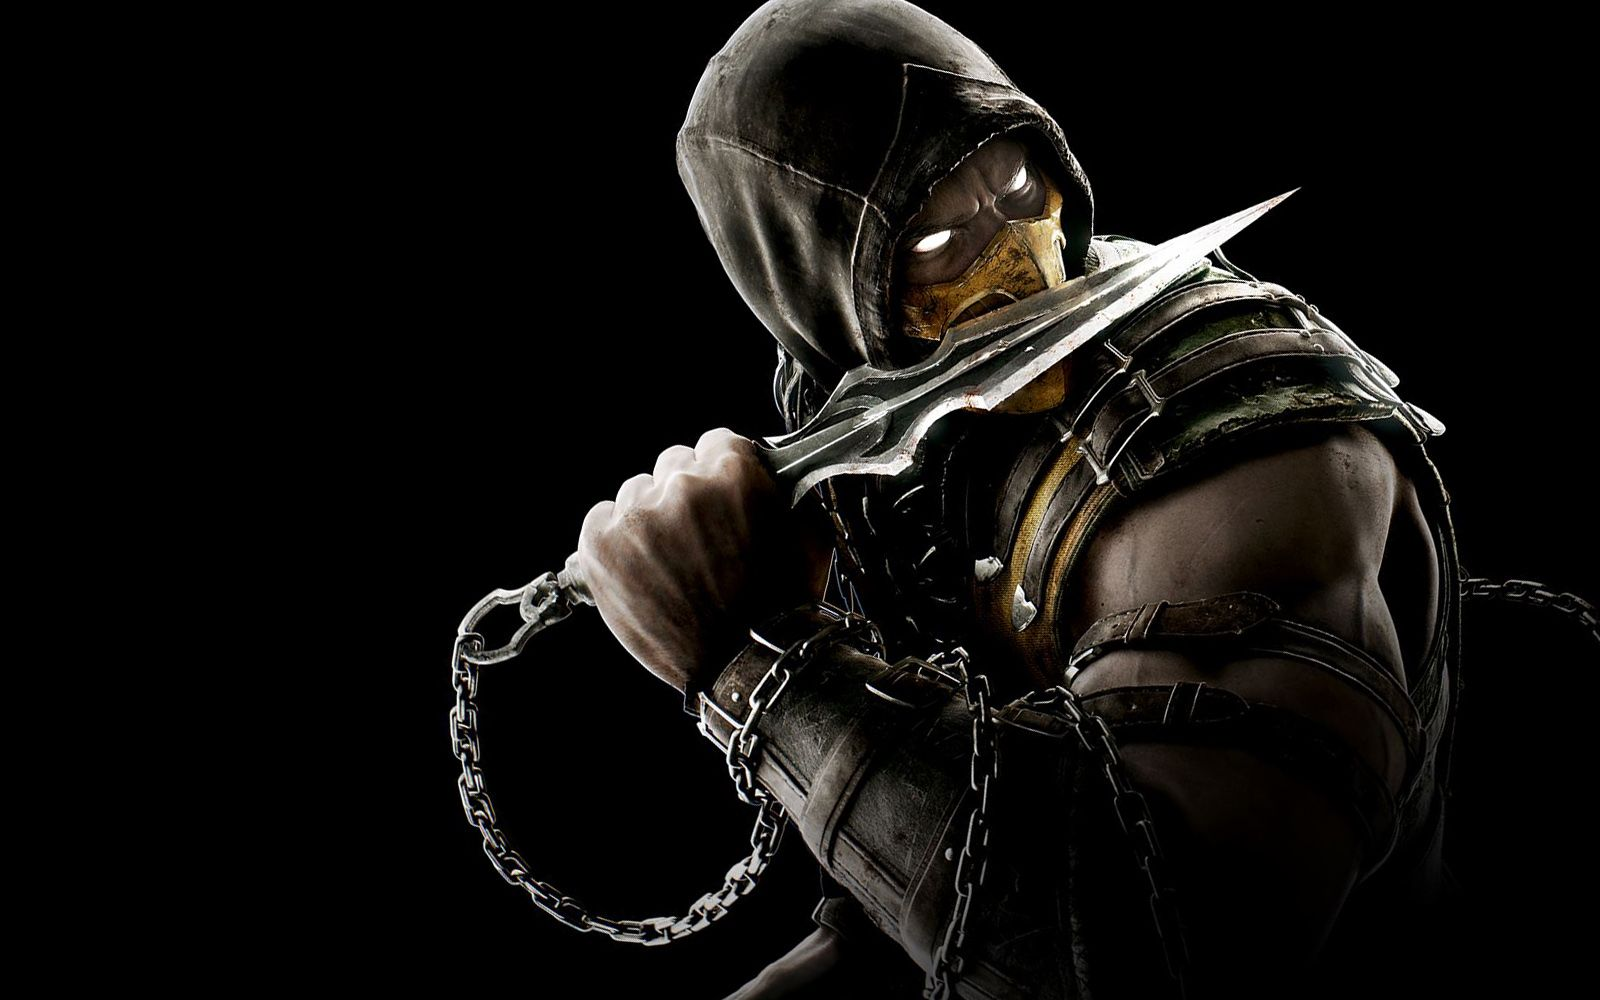 Scorpion Mortal Kombat X Game Wallpapers HD Wallpapers